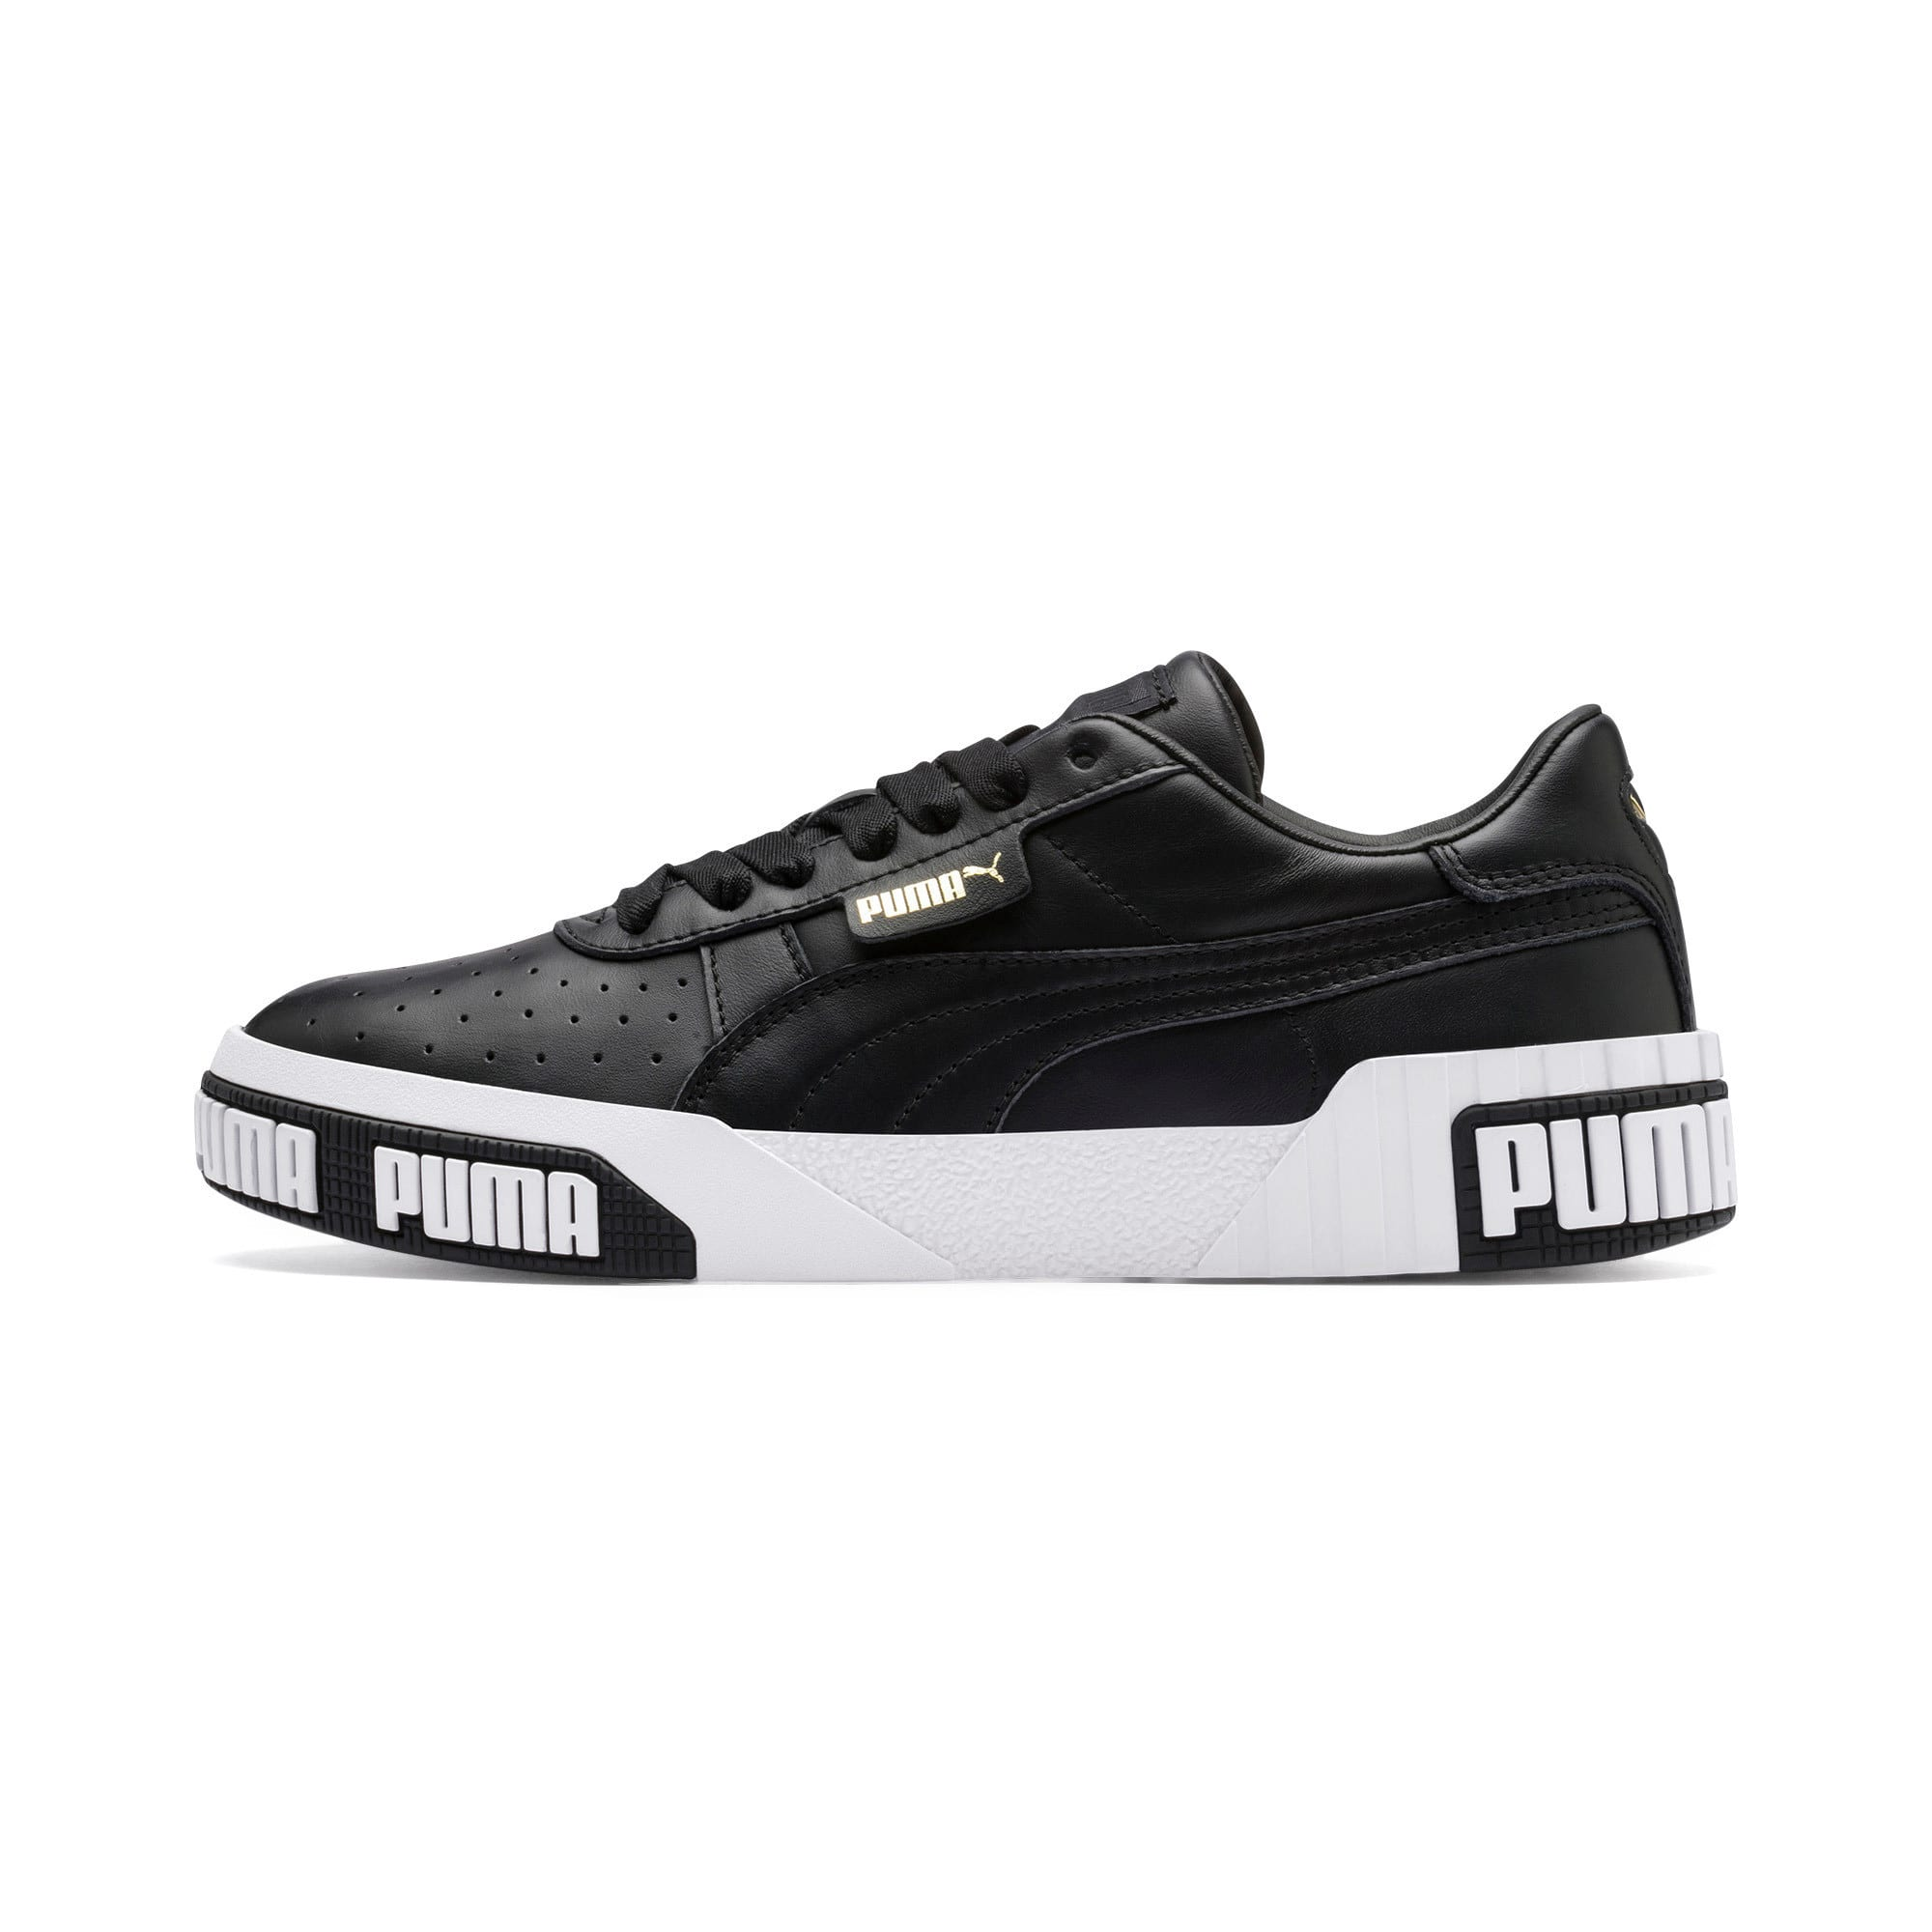 Thumbnail 1 of Damskie buty sportowe Cali Bold, Puma Black-Metallic Gold, medium